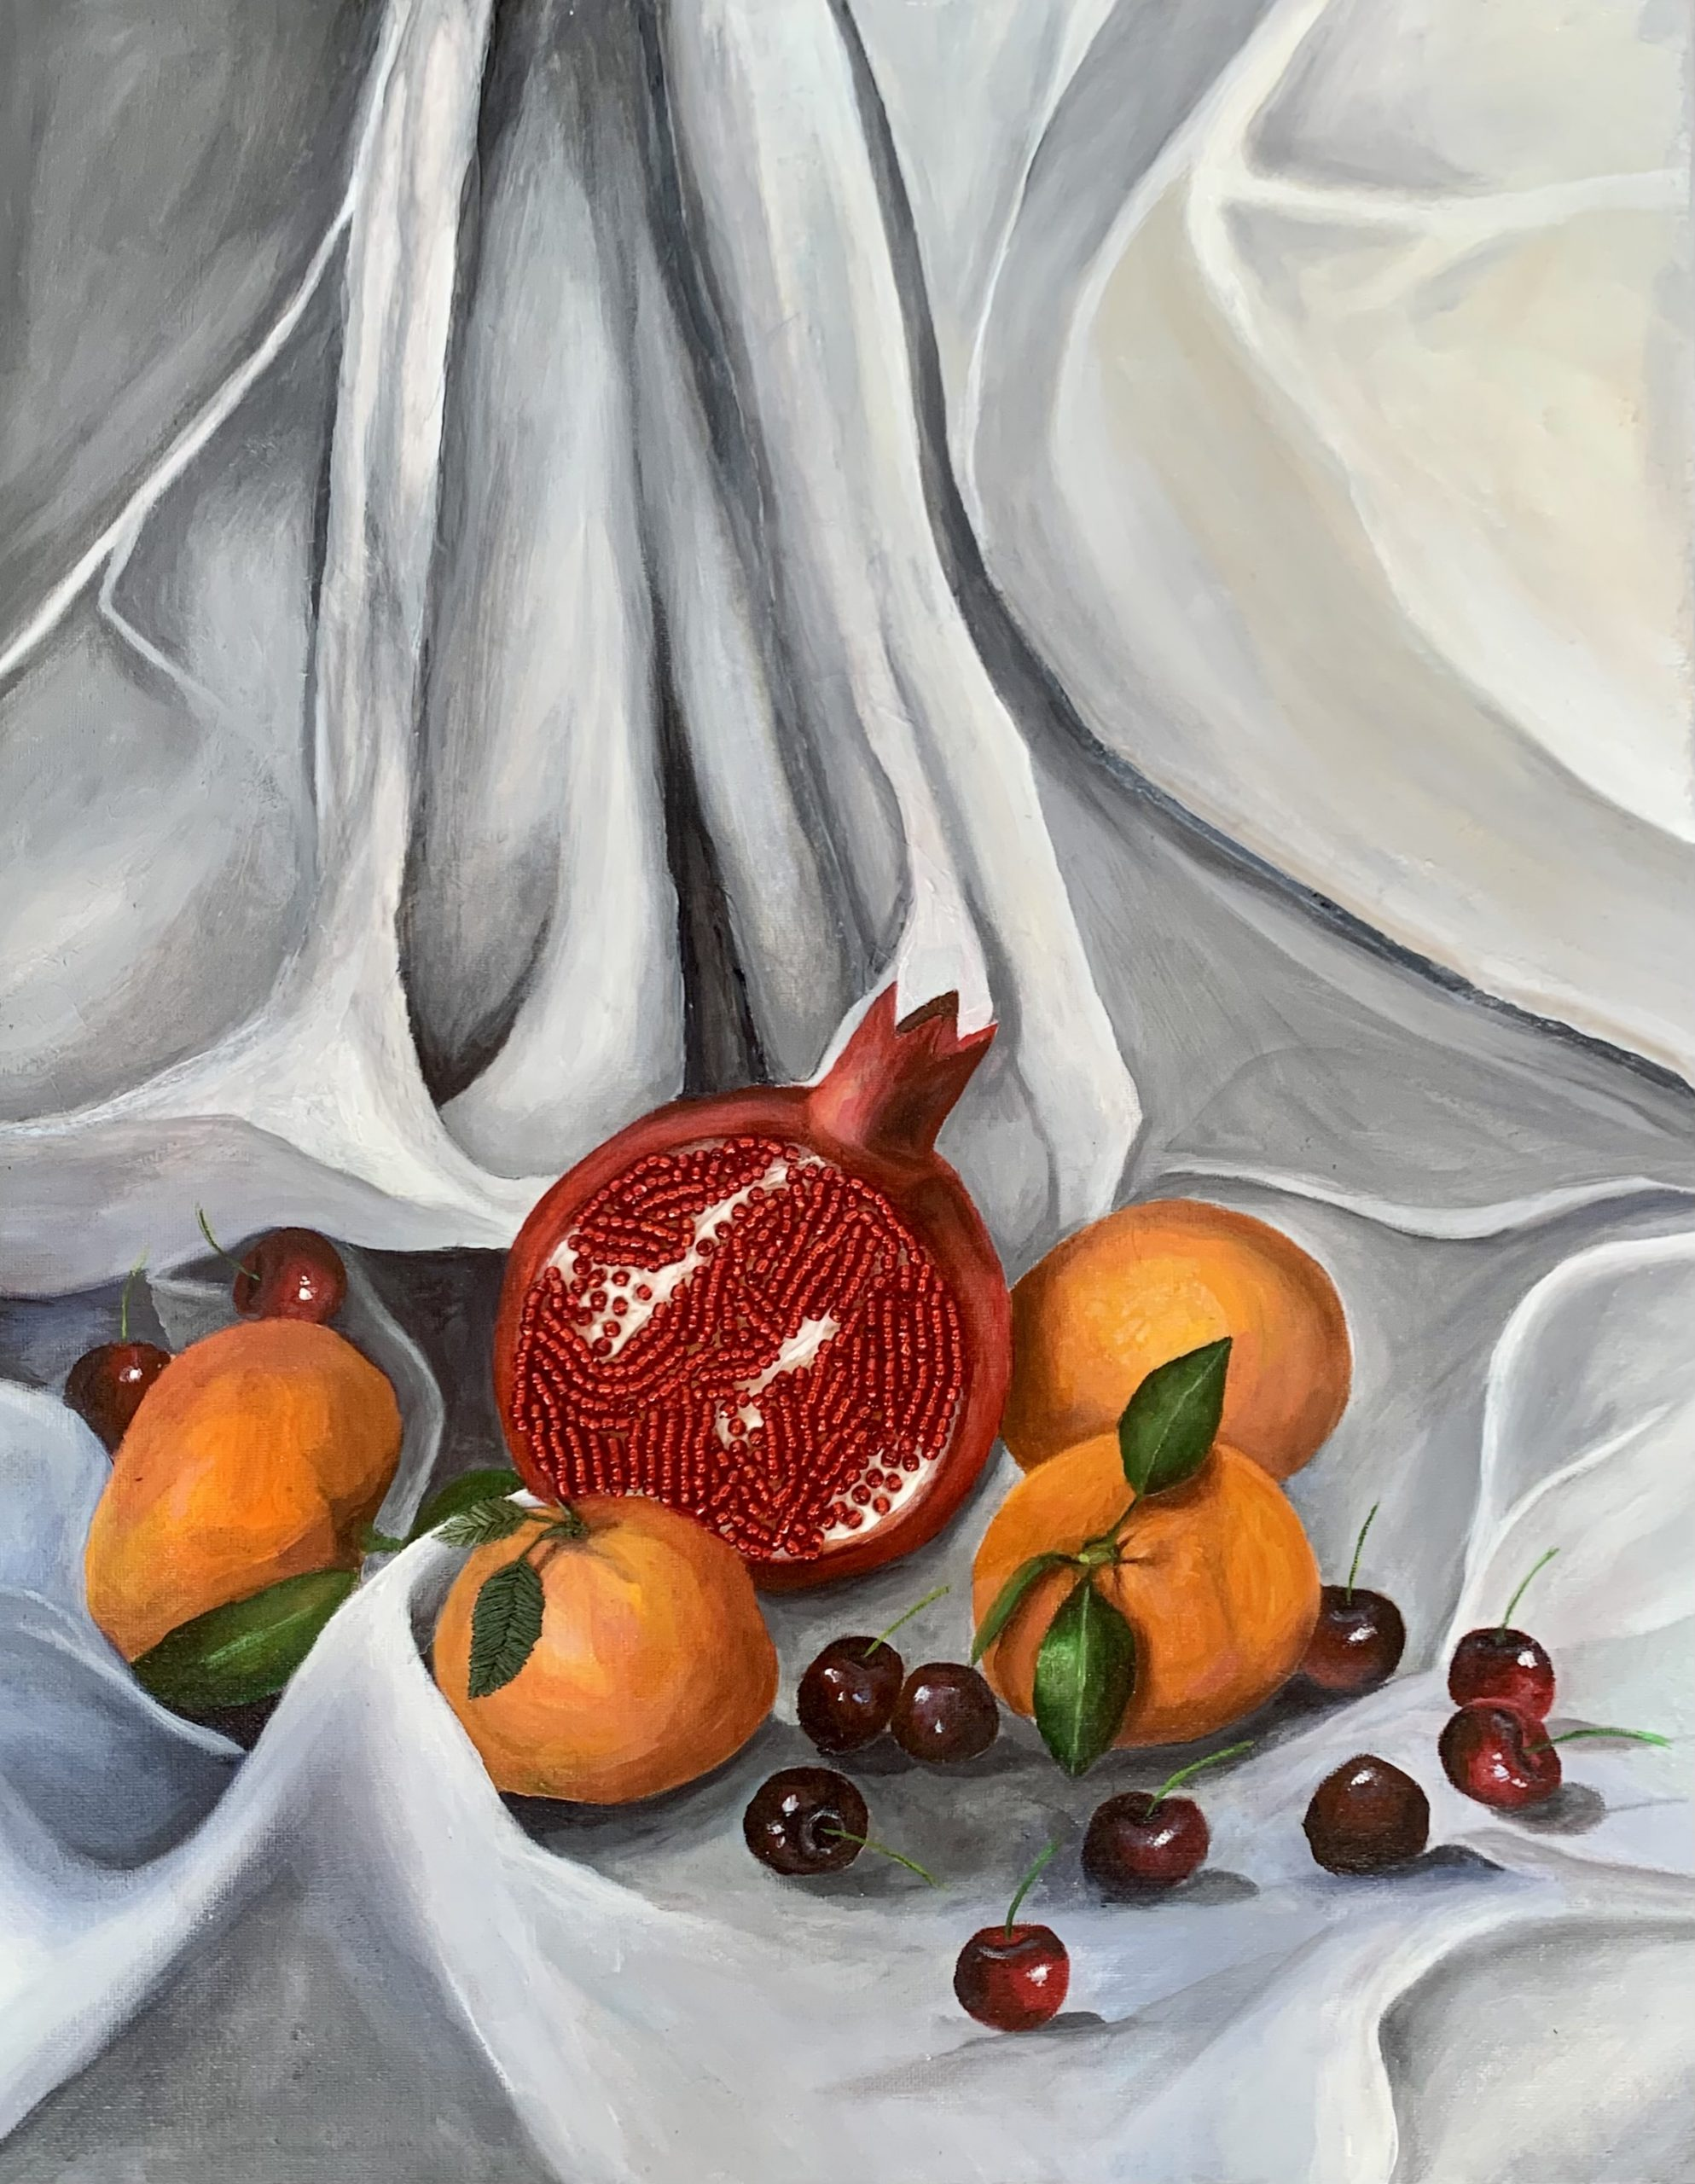 Artist #4 - Fruit of the Womb